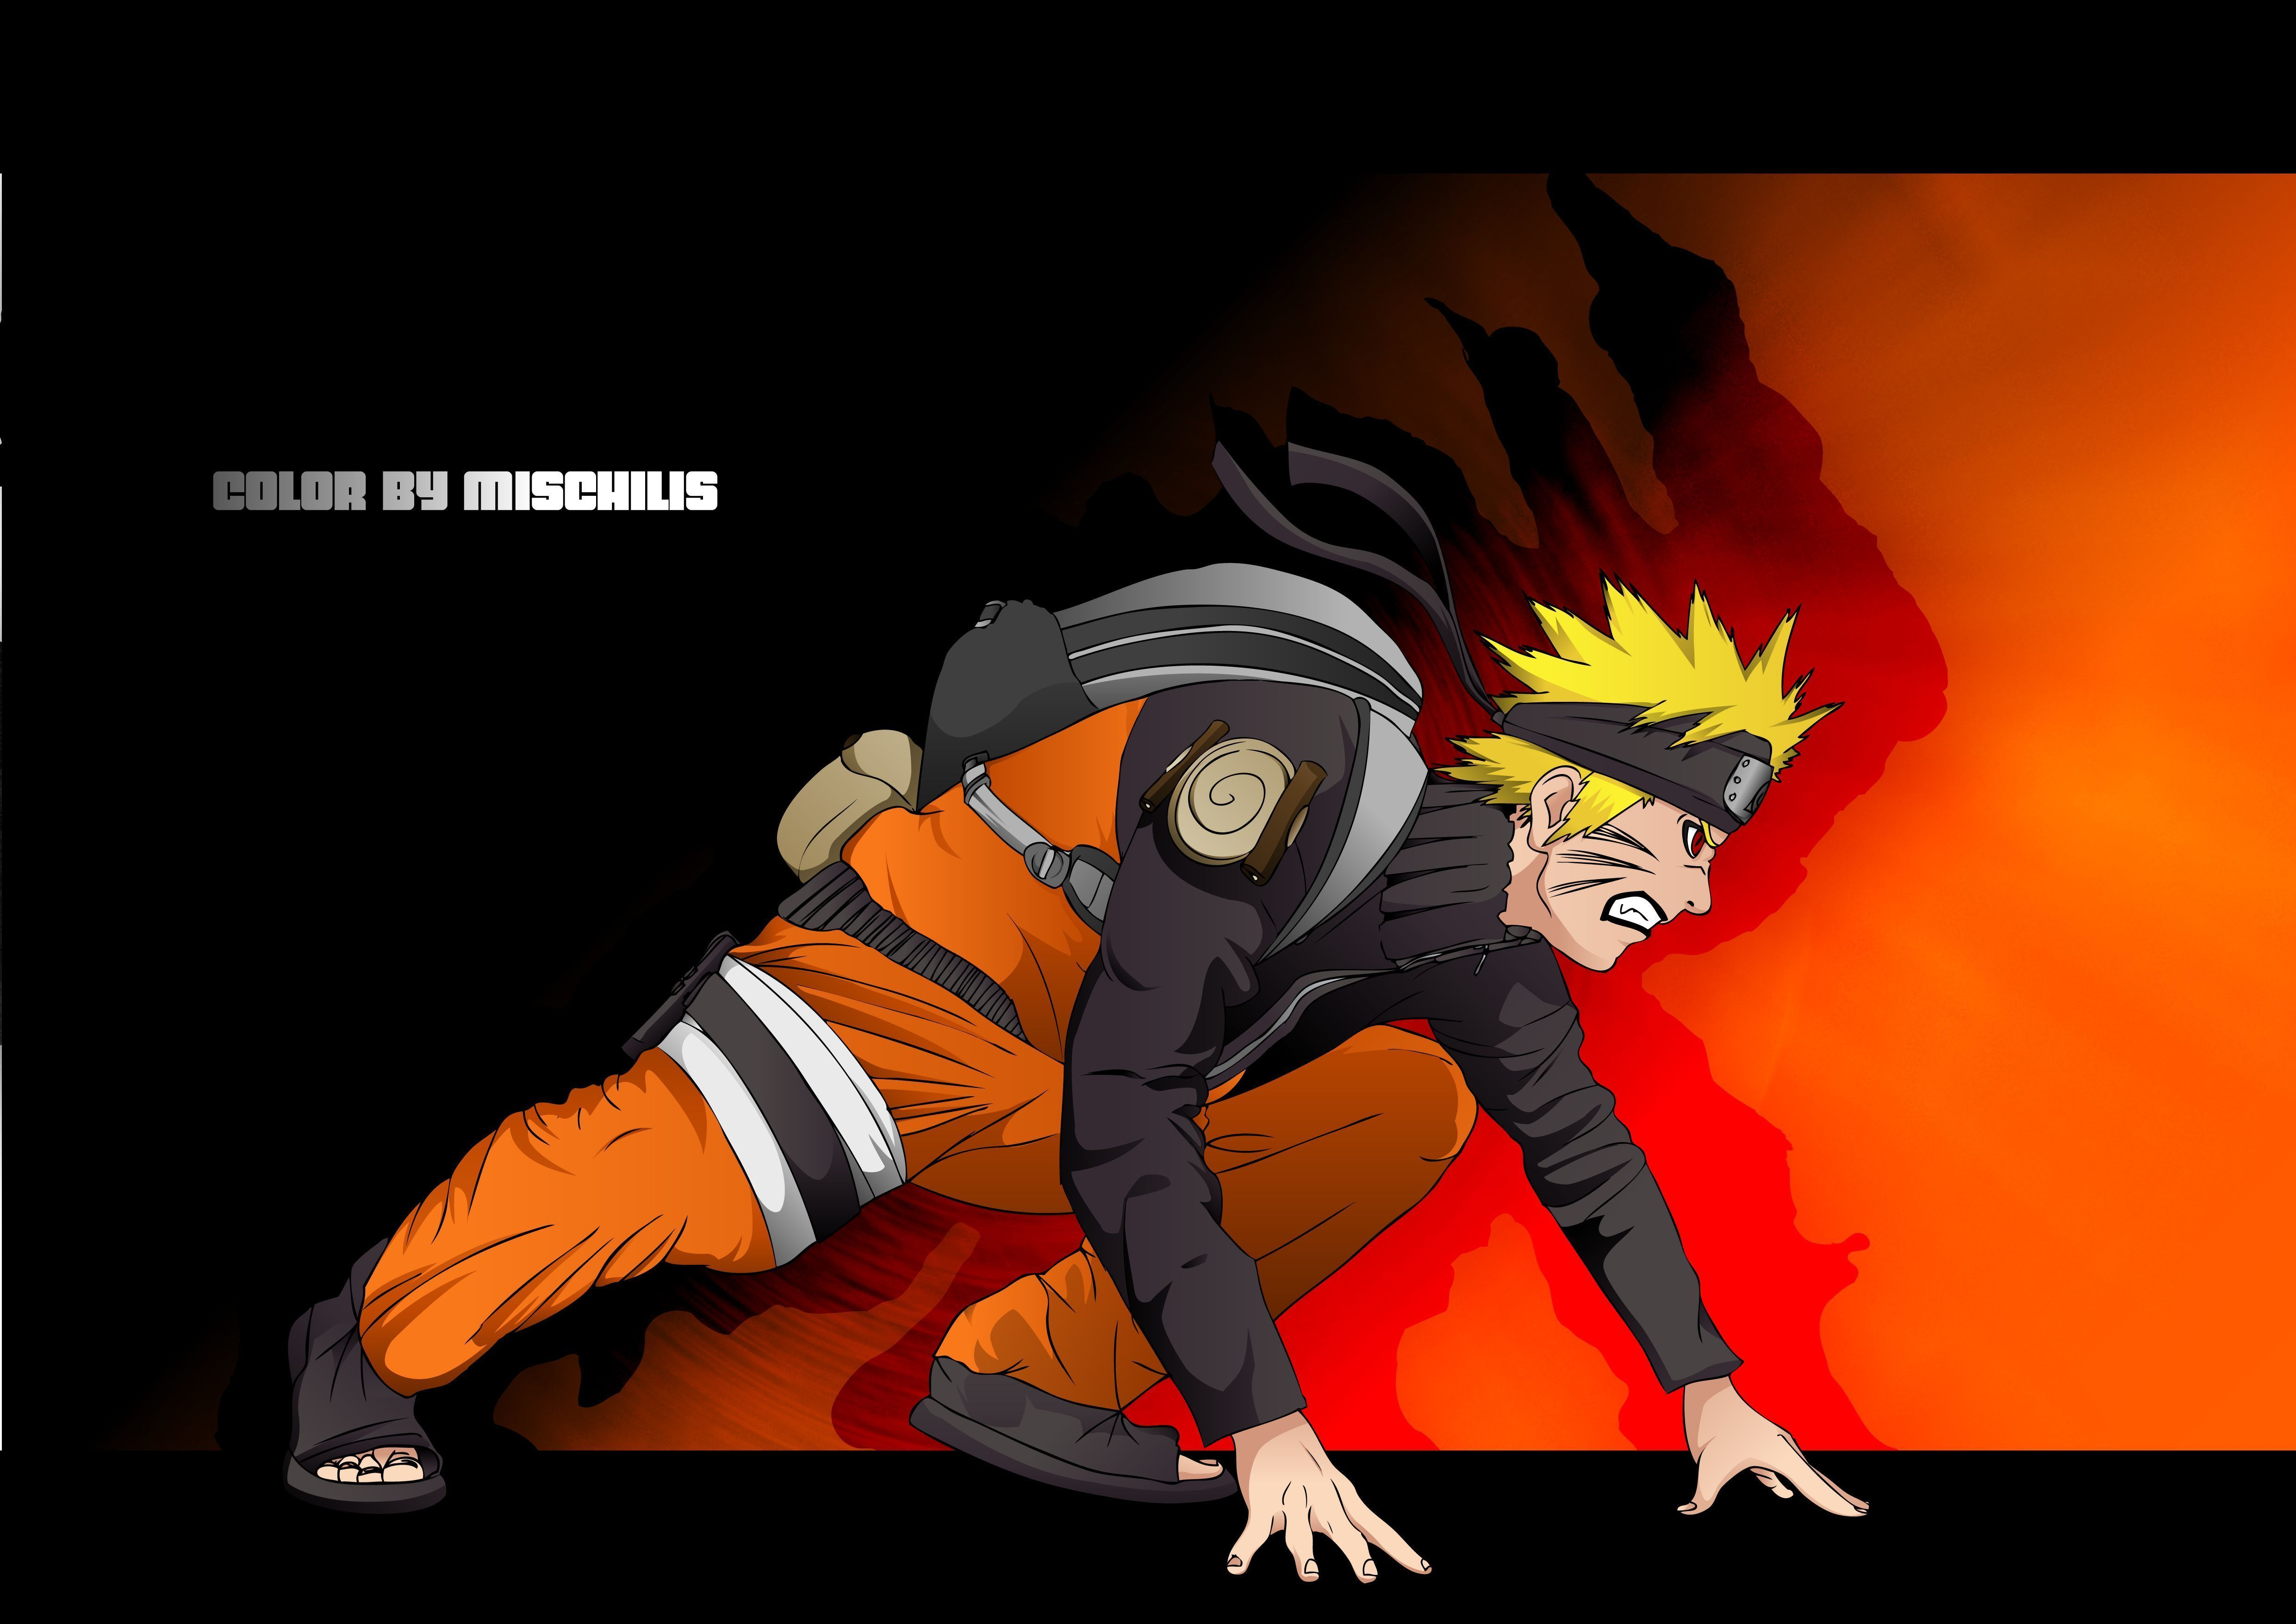 New Great Full HD Naruto WallpaperS ANIME ATTACK